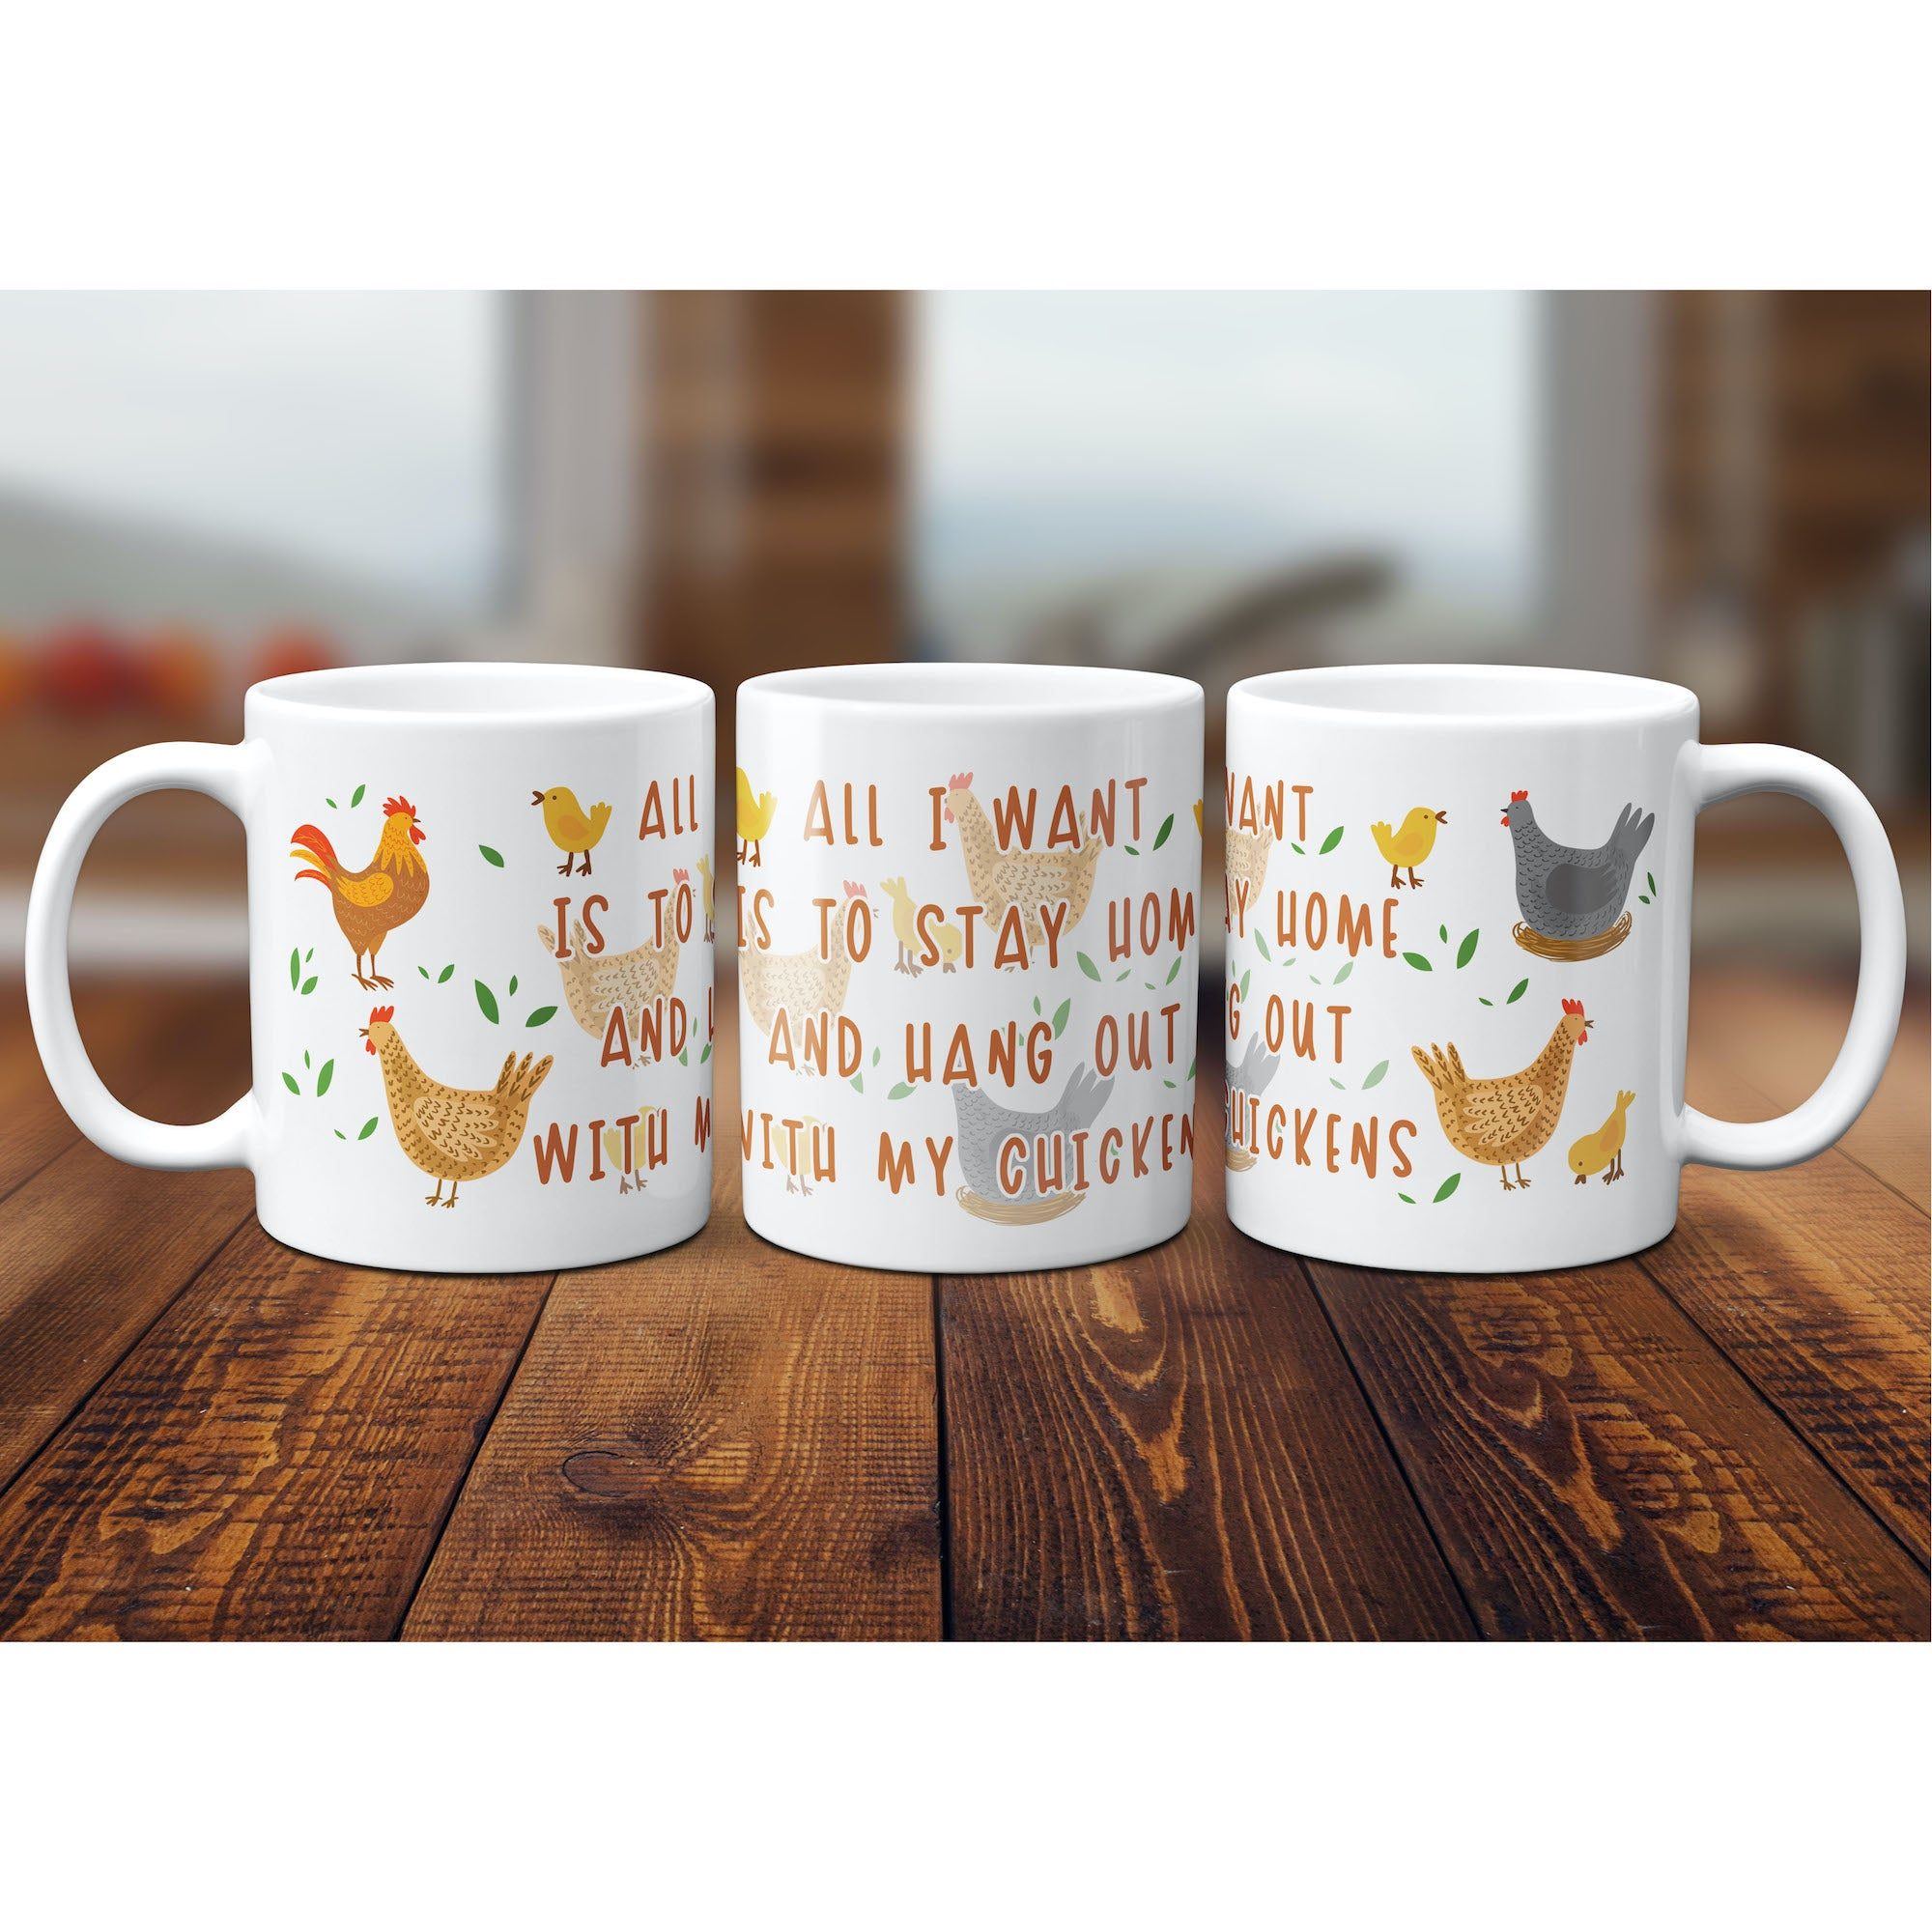 Funny Chicken Mug, Chicken Lover Gift, Cute Chicken Graphic, Crazy Chicken Lady, Coffee Mug